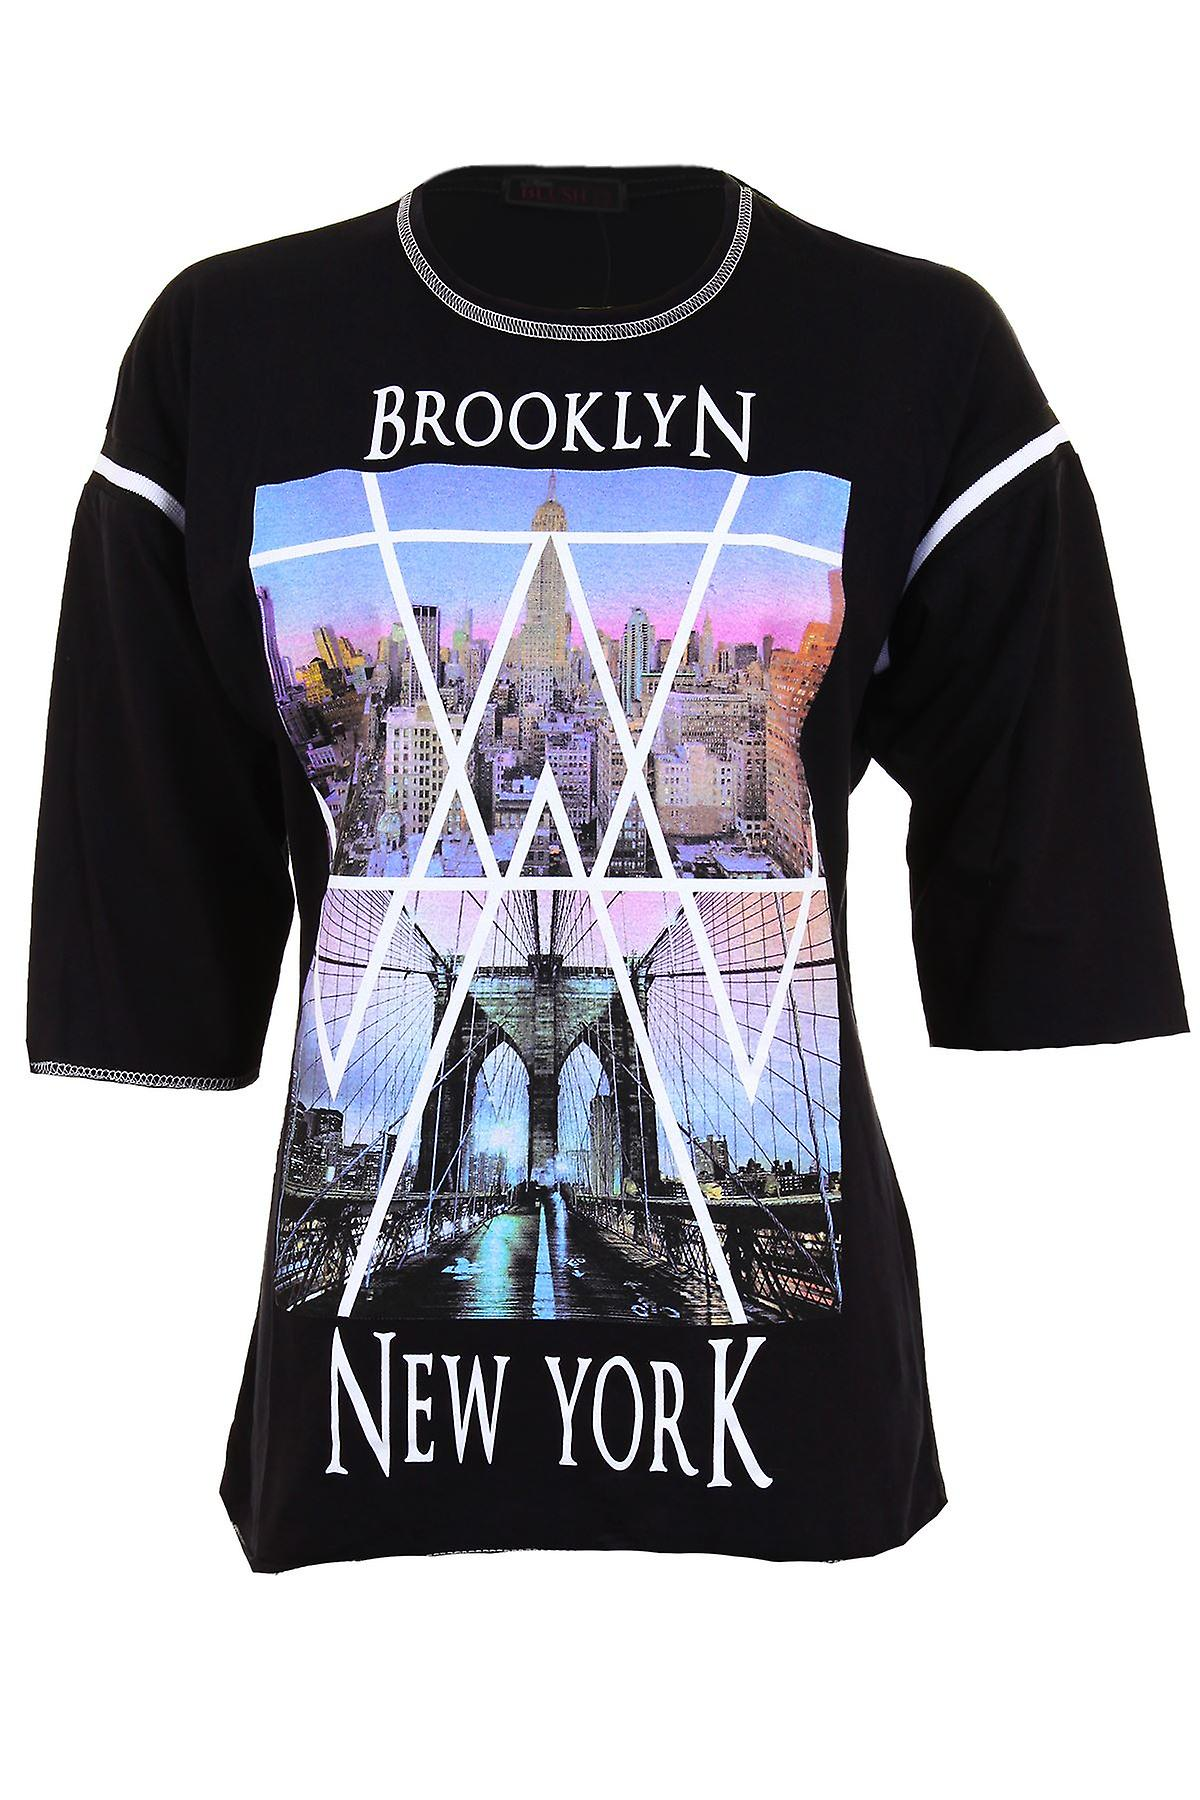 Ladies 3/4 Sleeve Brooklyn New York NY City Print Casual Women's Top